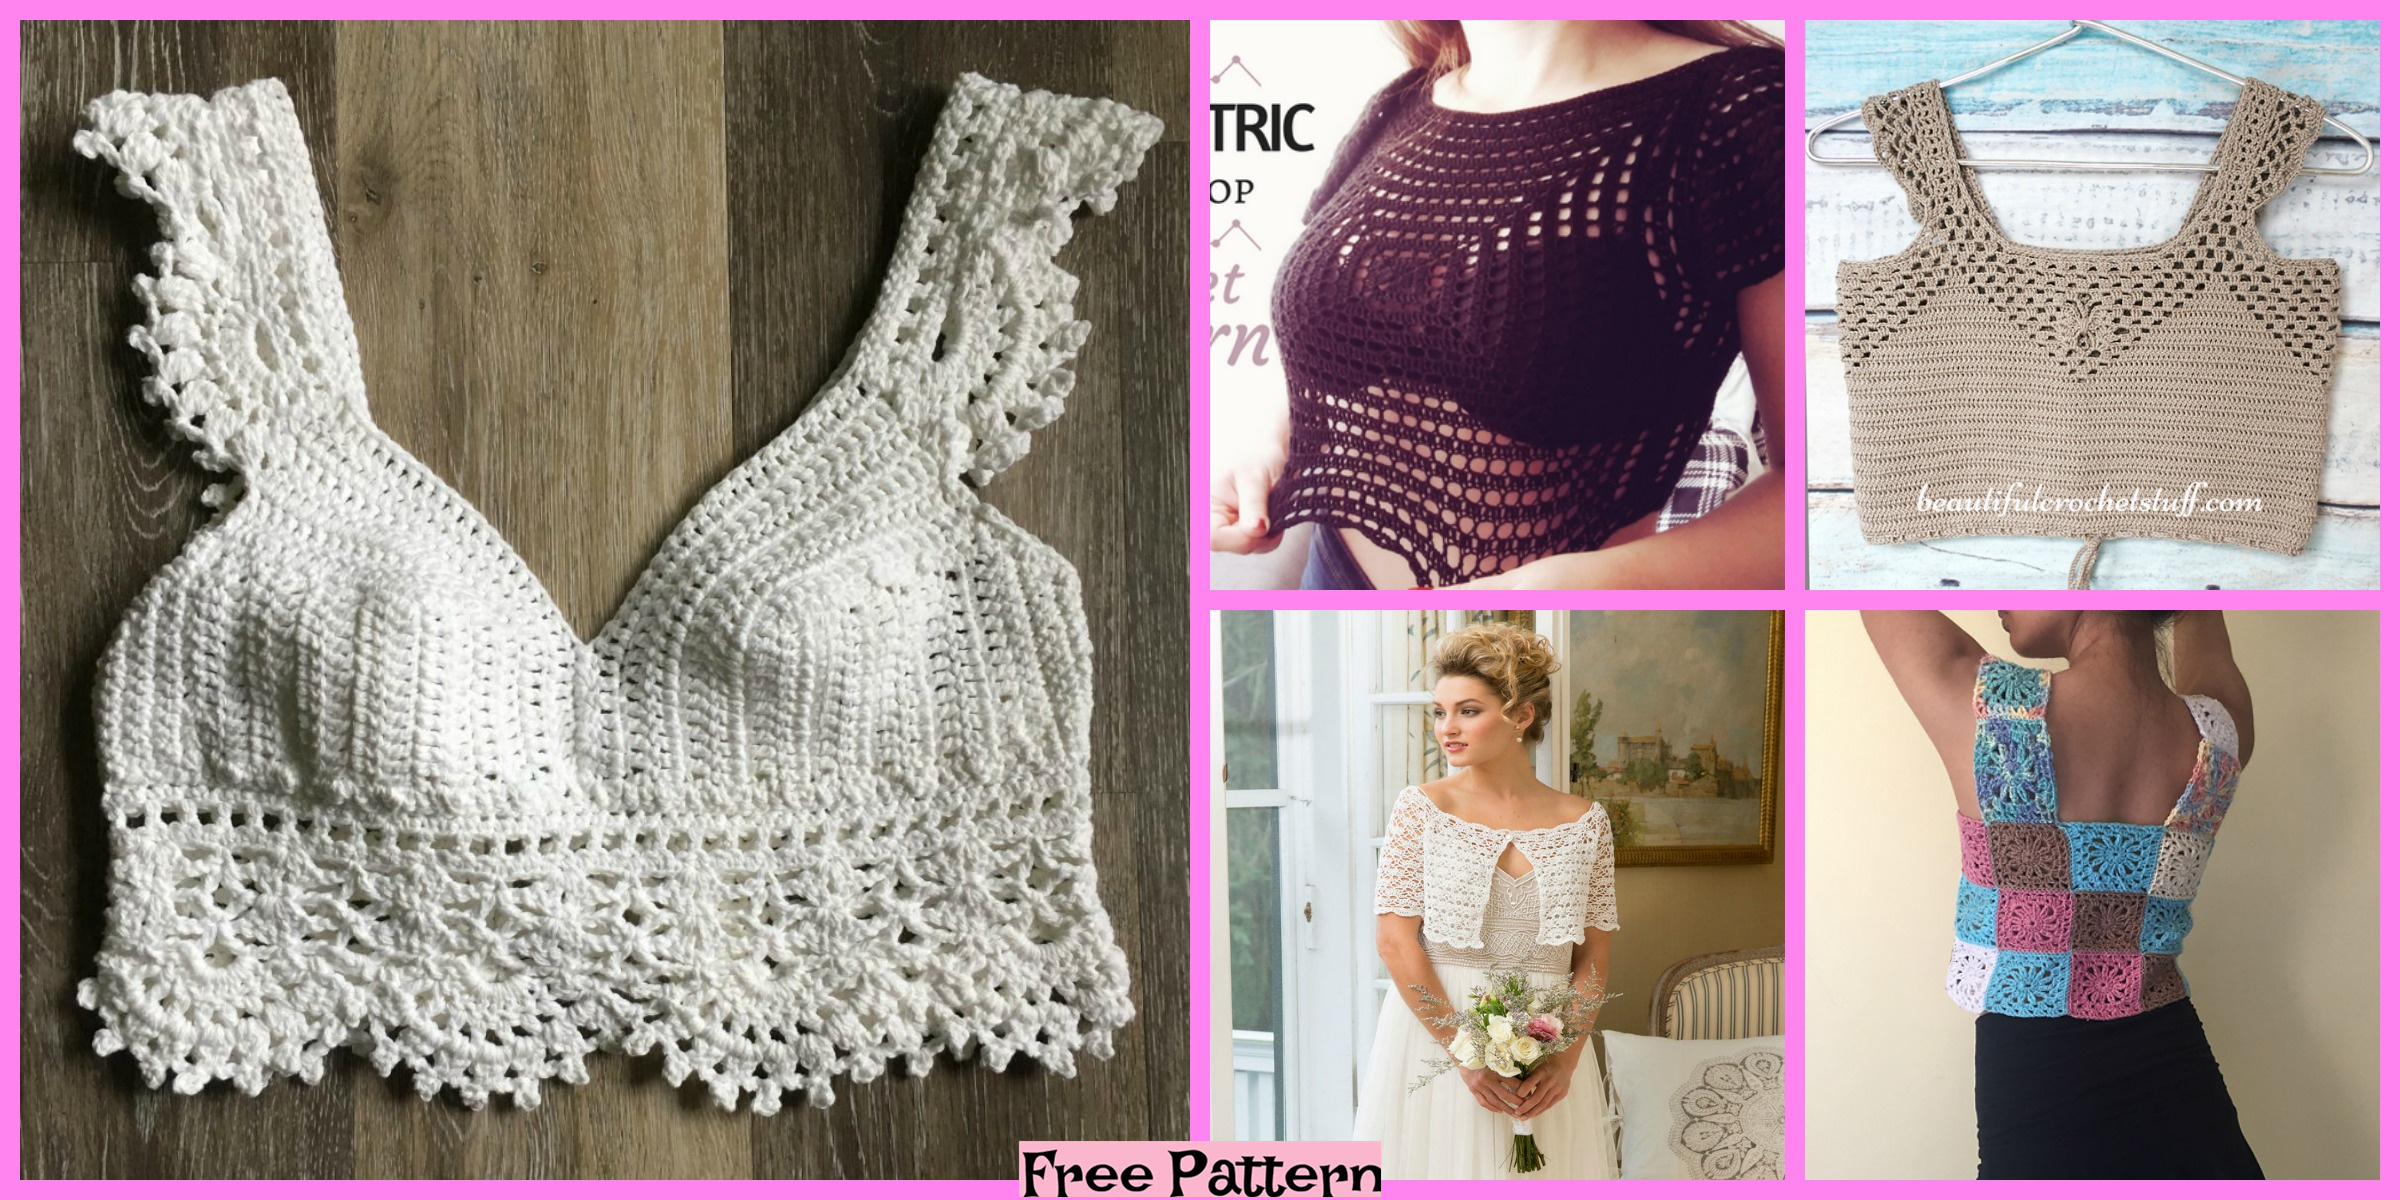 10 Crochet Lace Crop Top Free Patterns